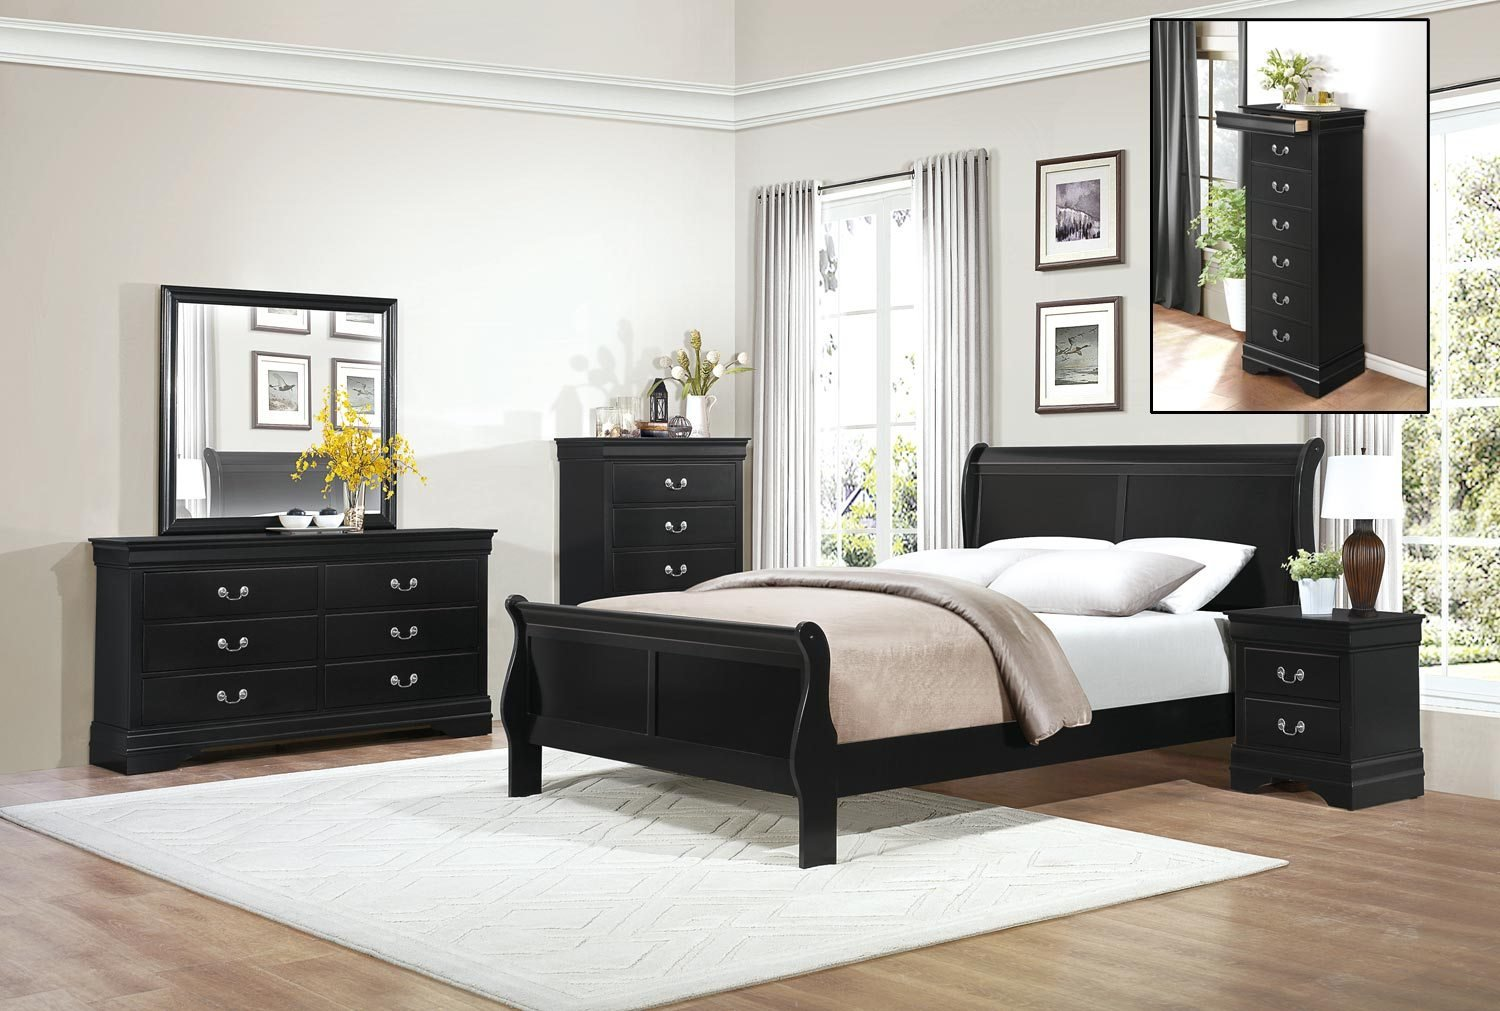 Best Homelegance Mayville Bedroom Set Black 2147Bk Bedroom With Pictures